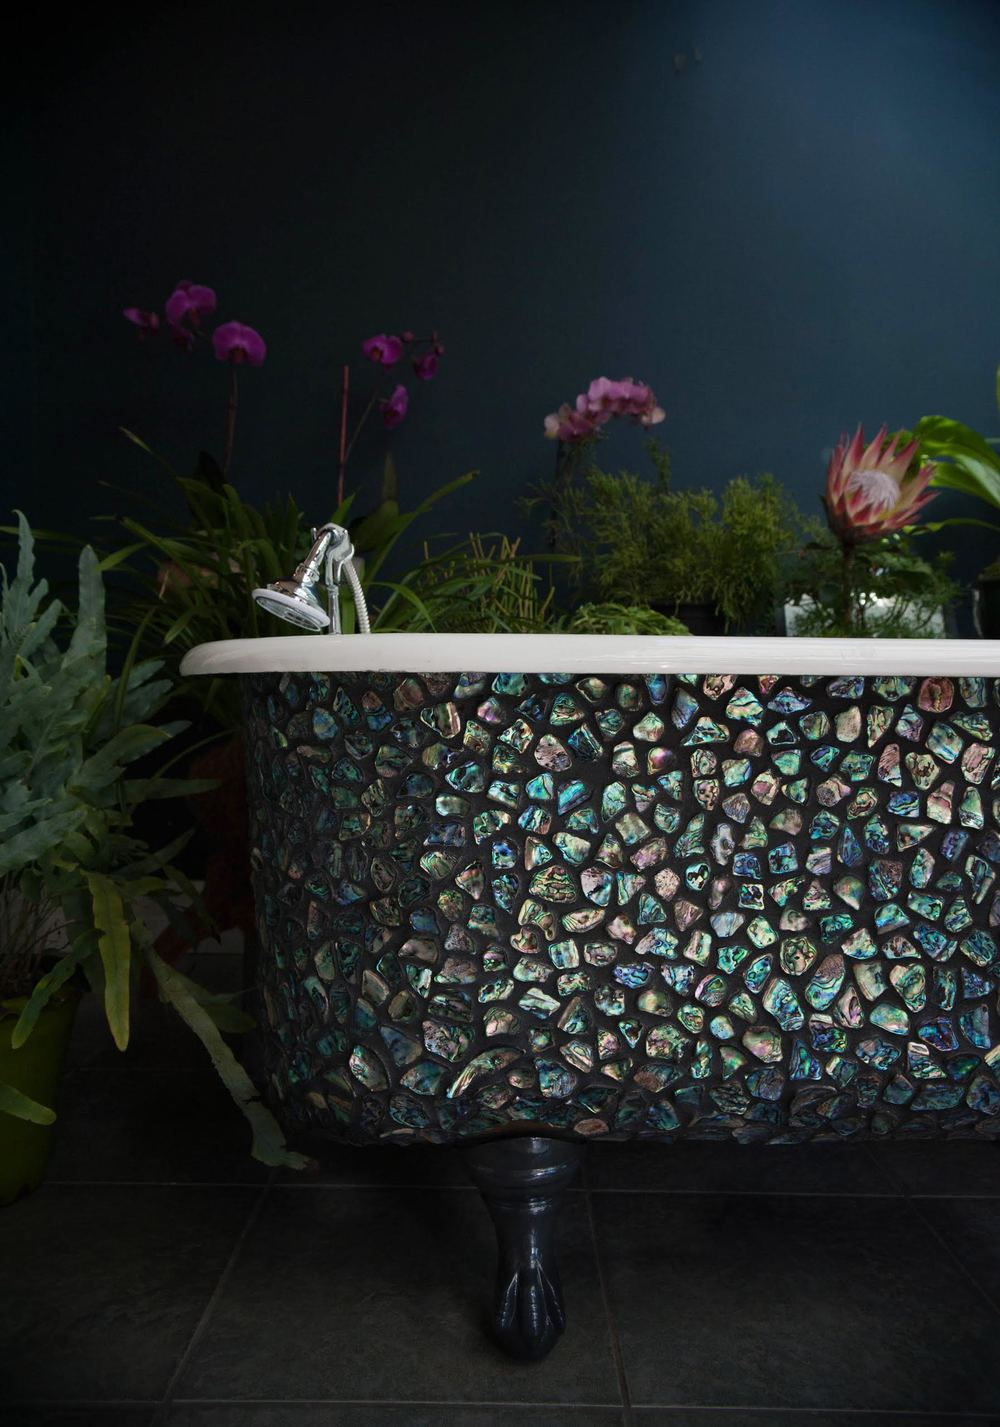 Paua sheel mosaic clawfoot tub detail